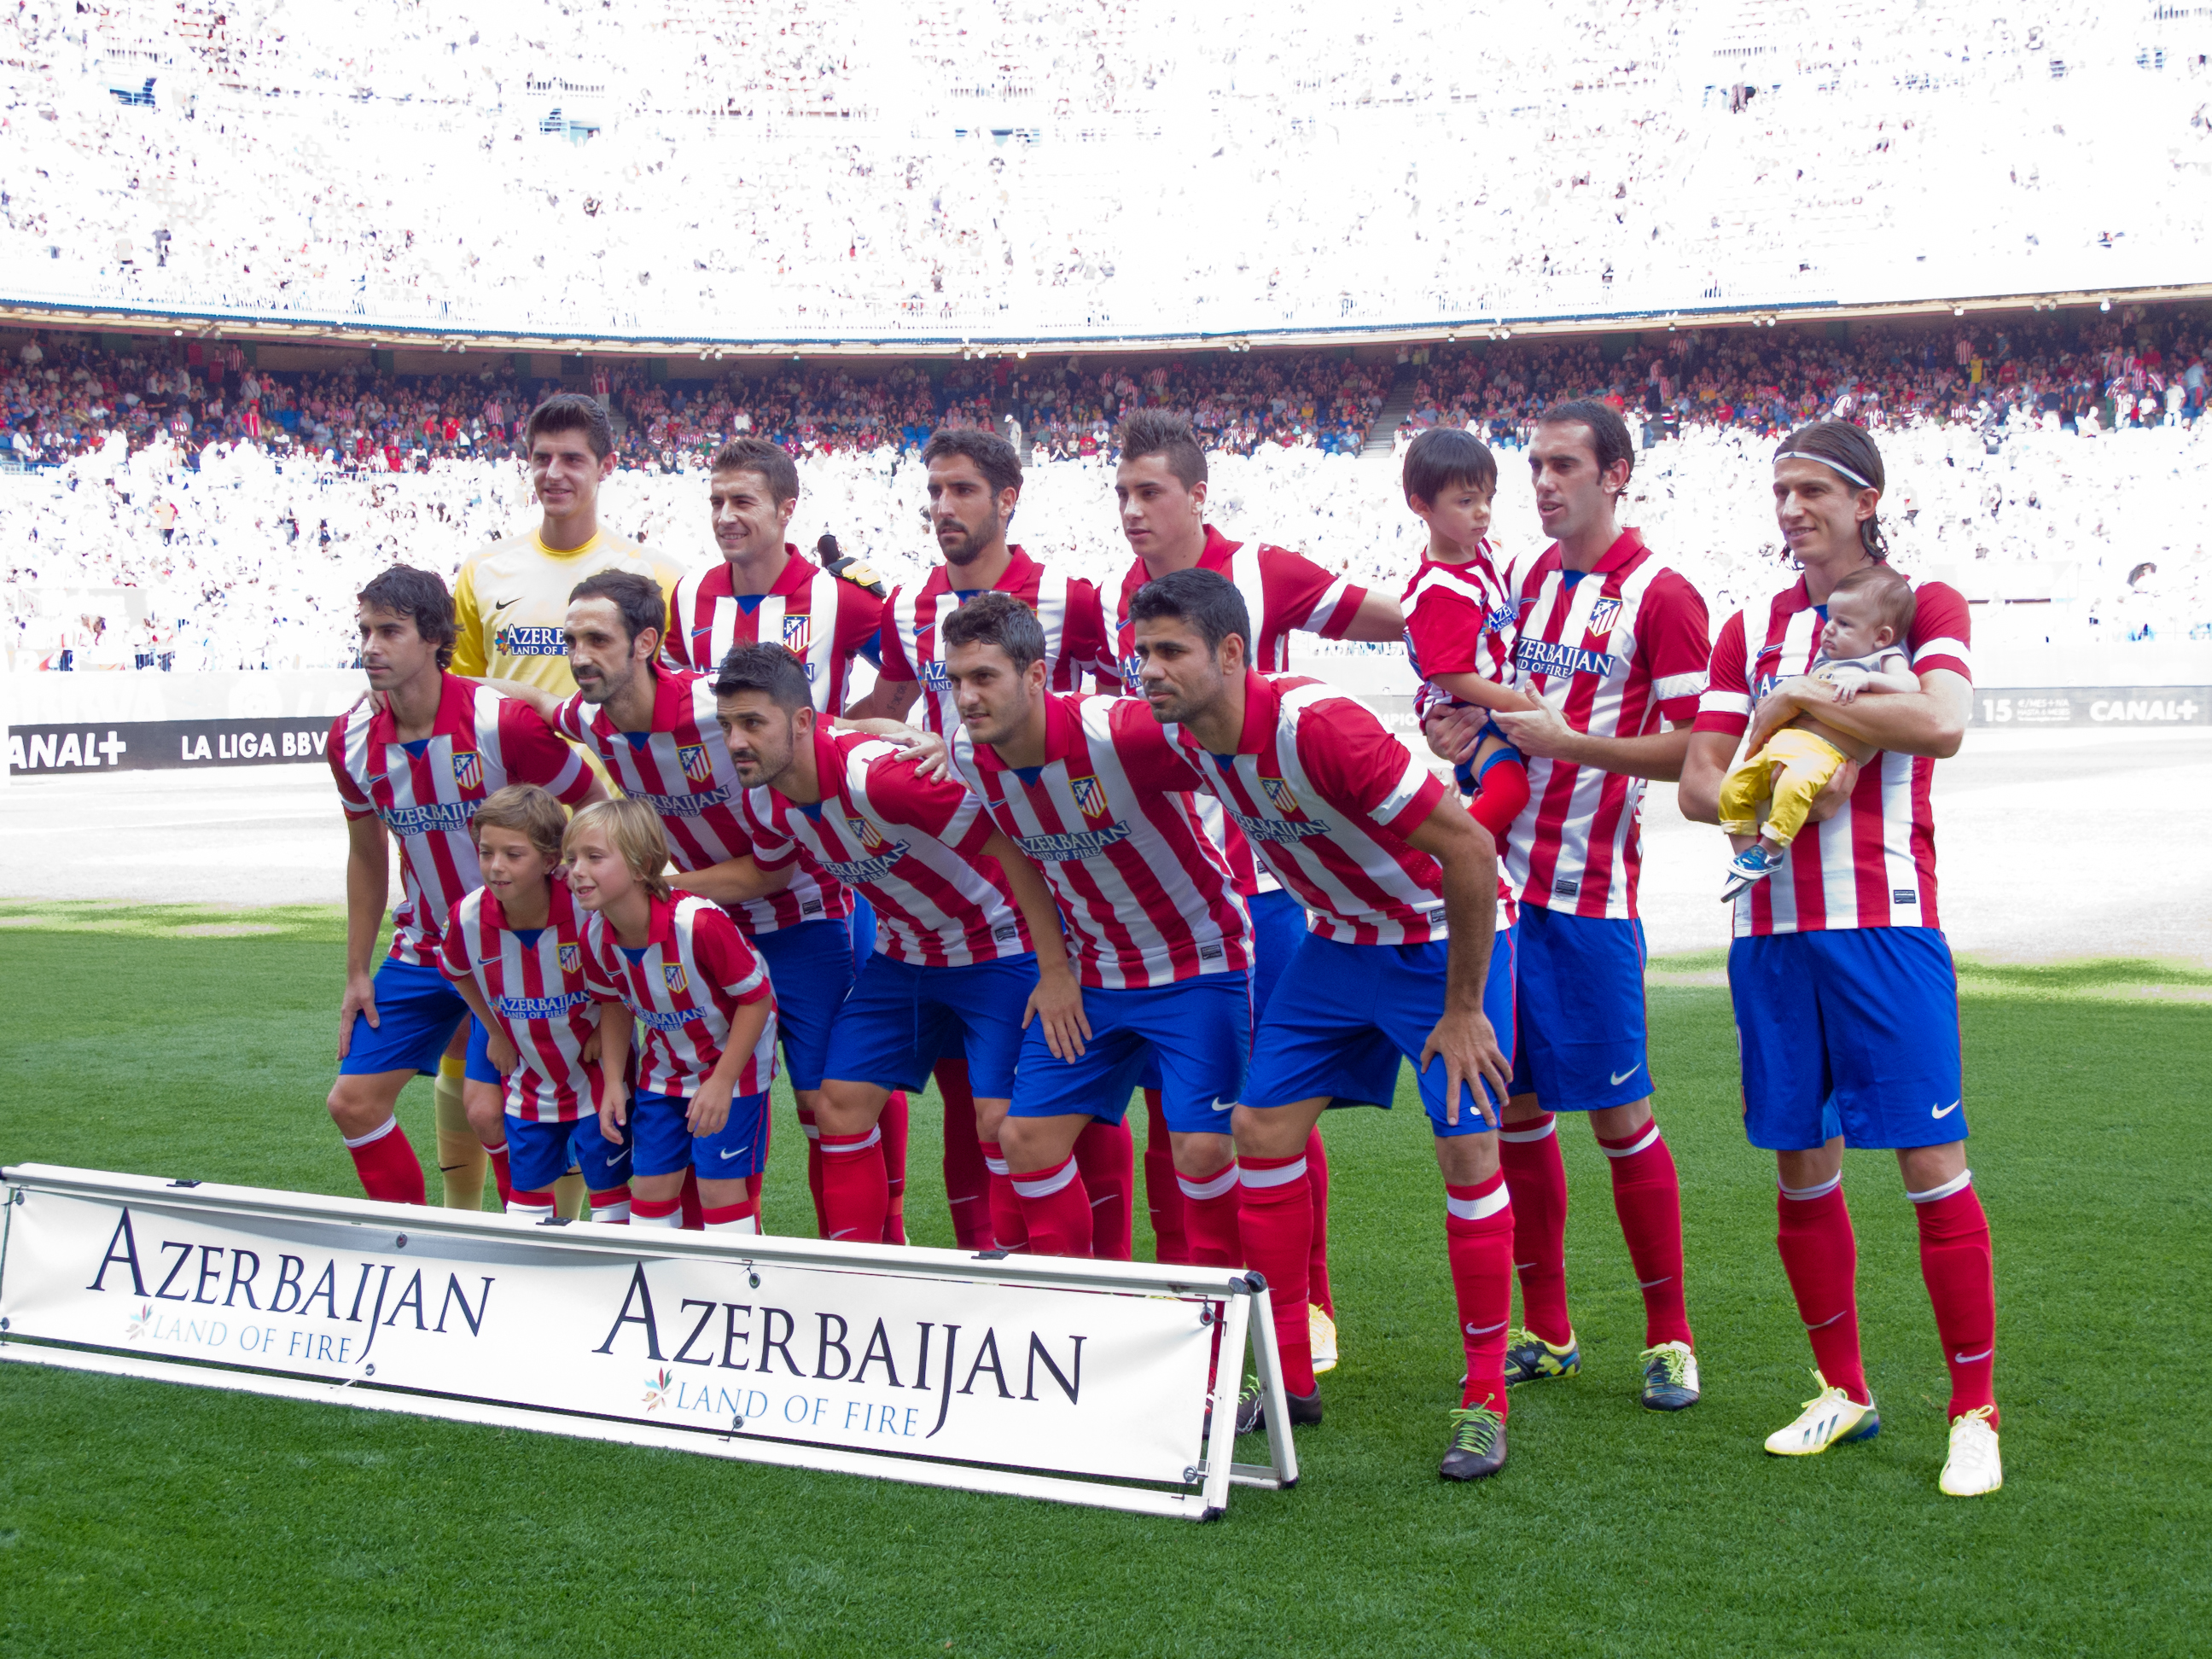 2013 14 Atlético Madrid Season Wikipedia